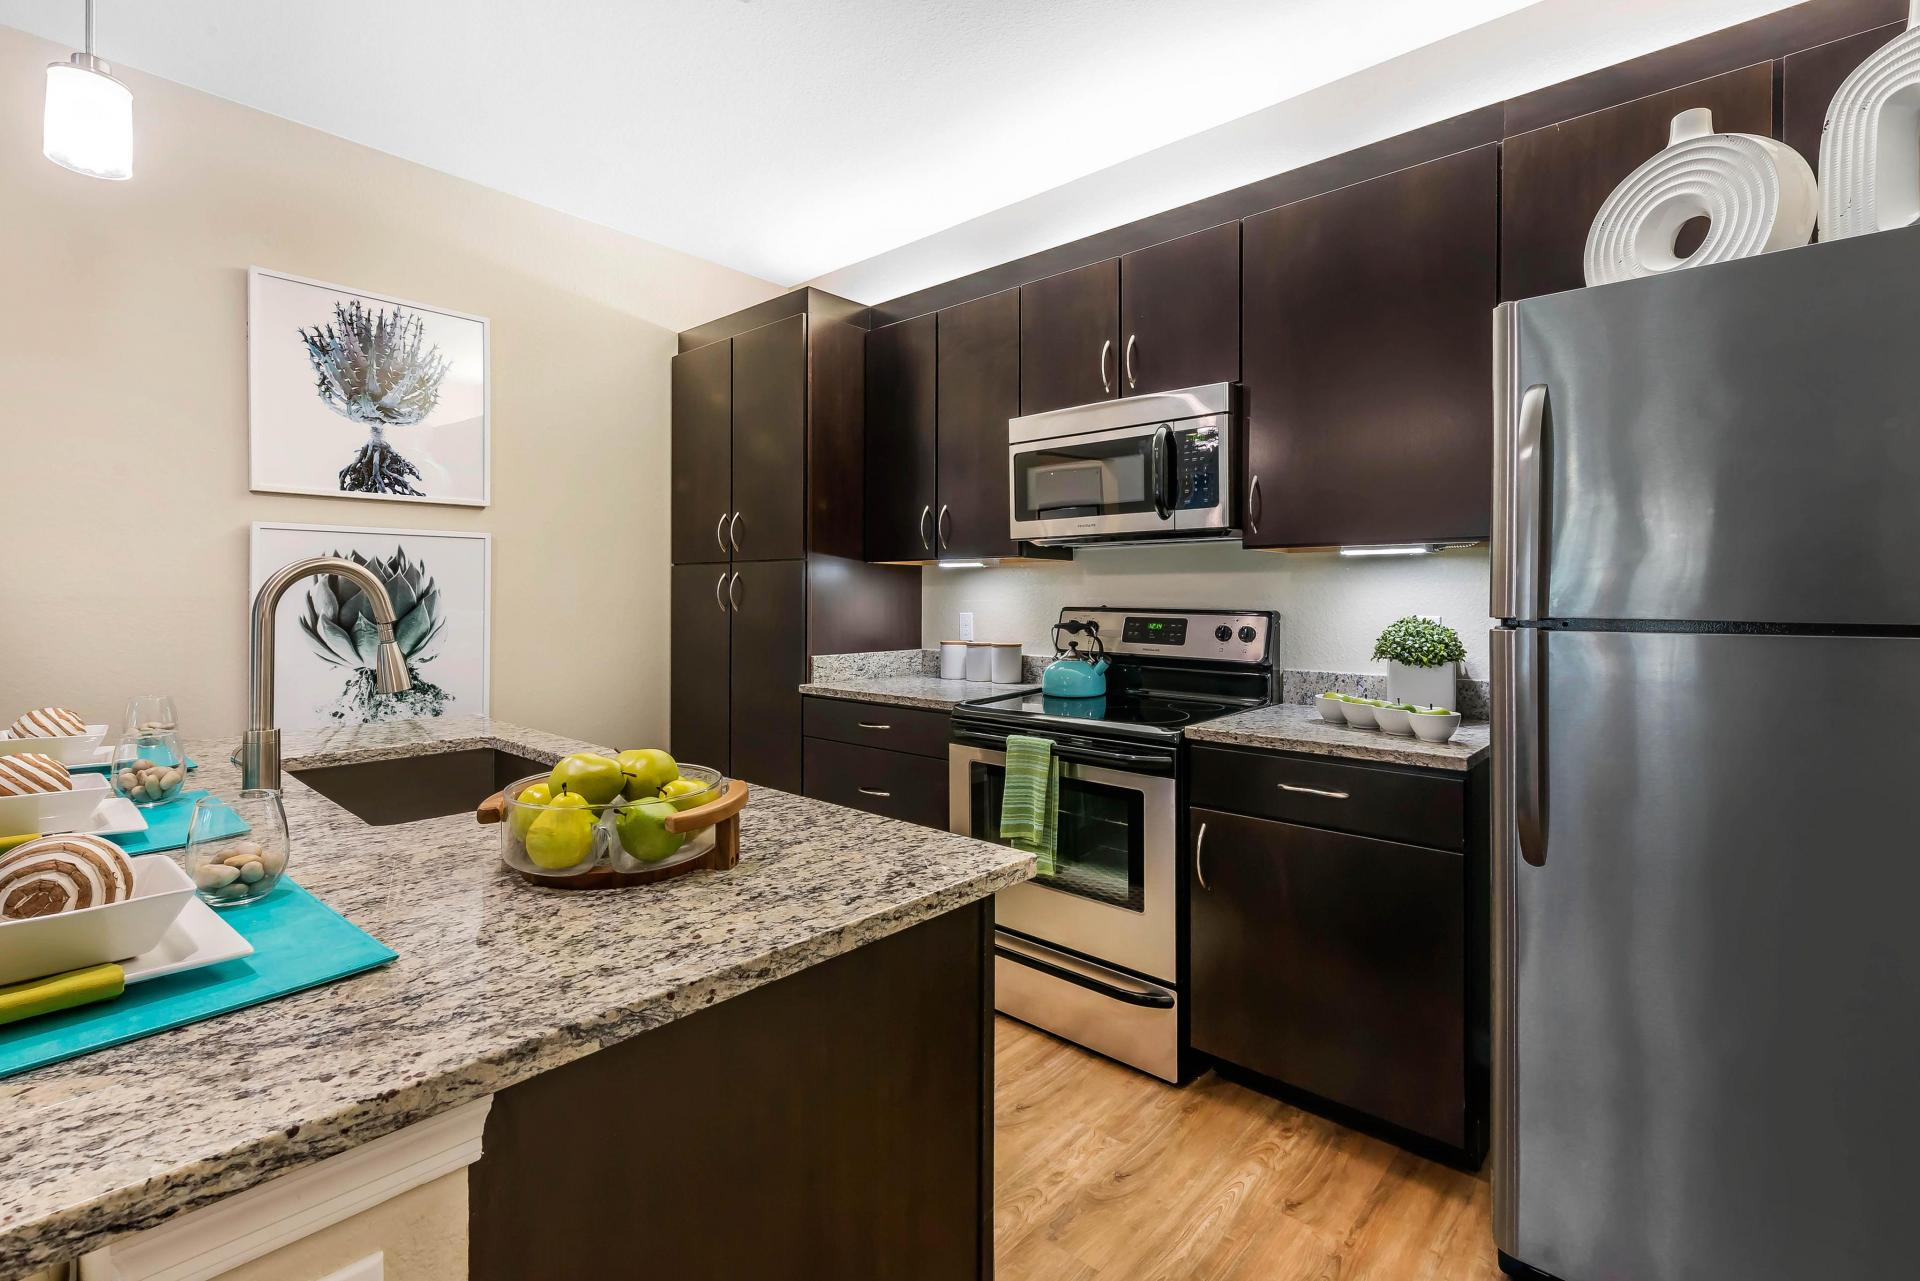 Kitchen at Citra Windermere Apartments